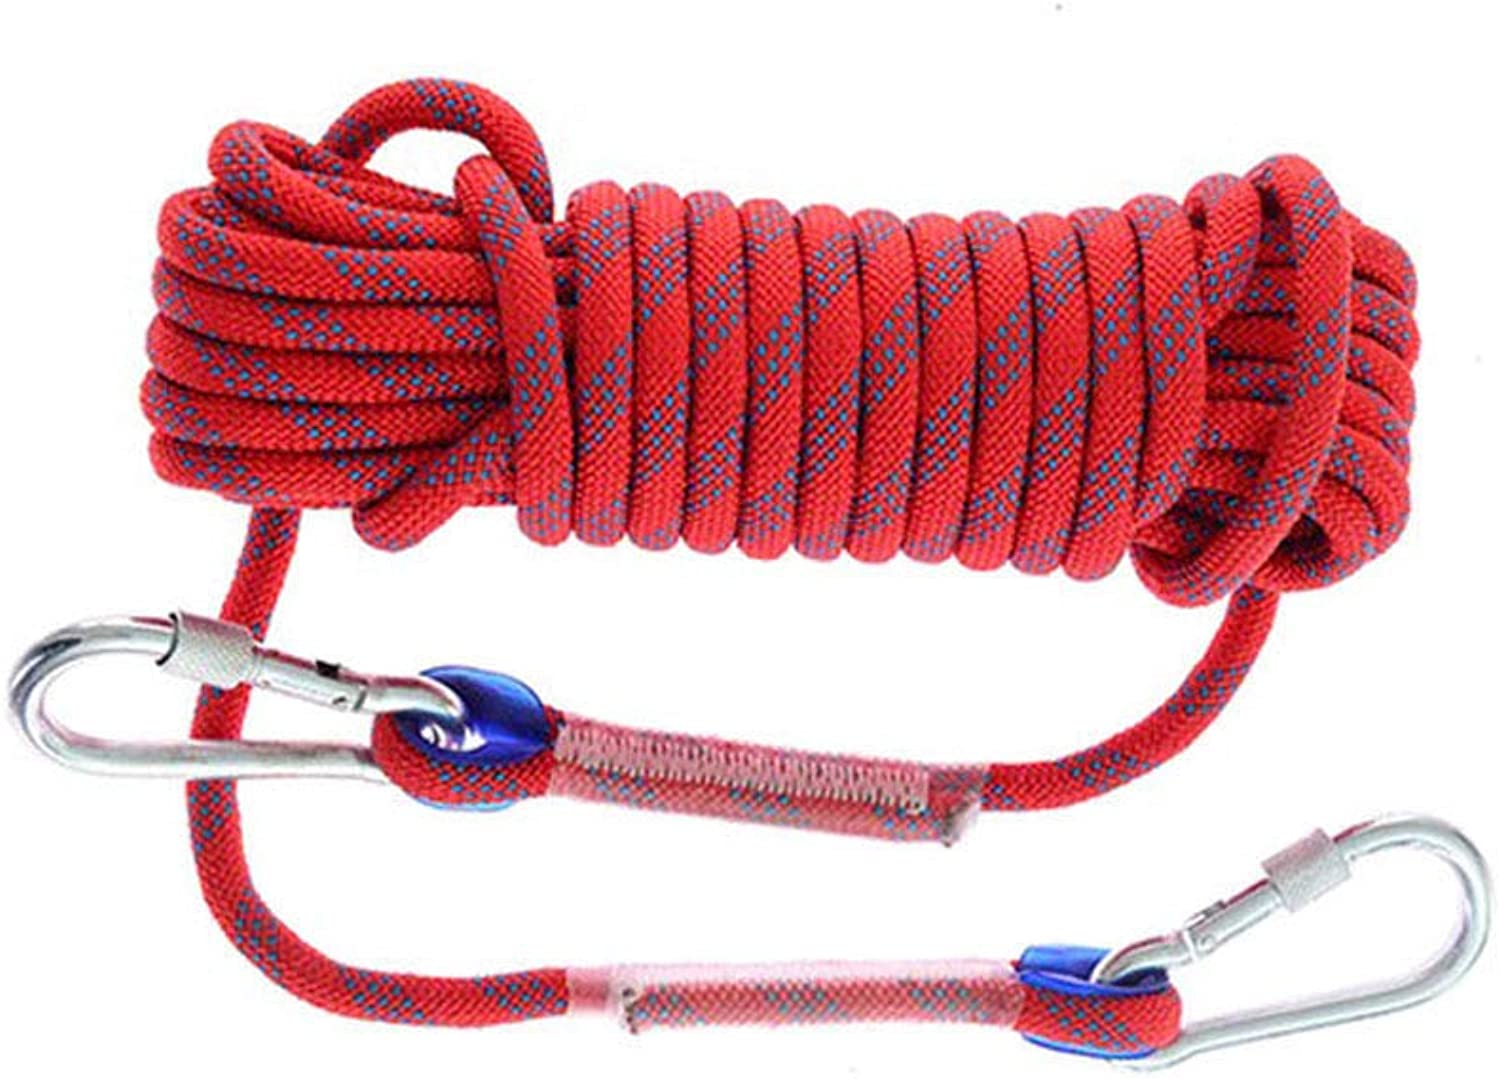 Climbing Rope Climbing Rope Escape Rope Outdoor Activity Accessories, Diameter 8 Mm Nylon Loading 800KG,10mRed